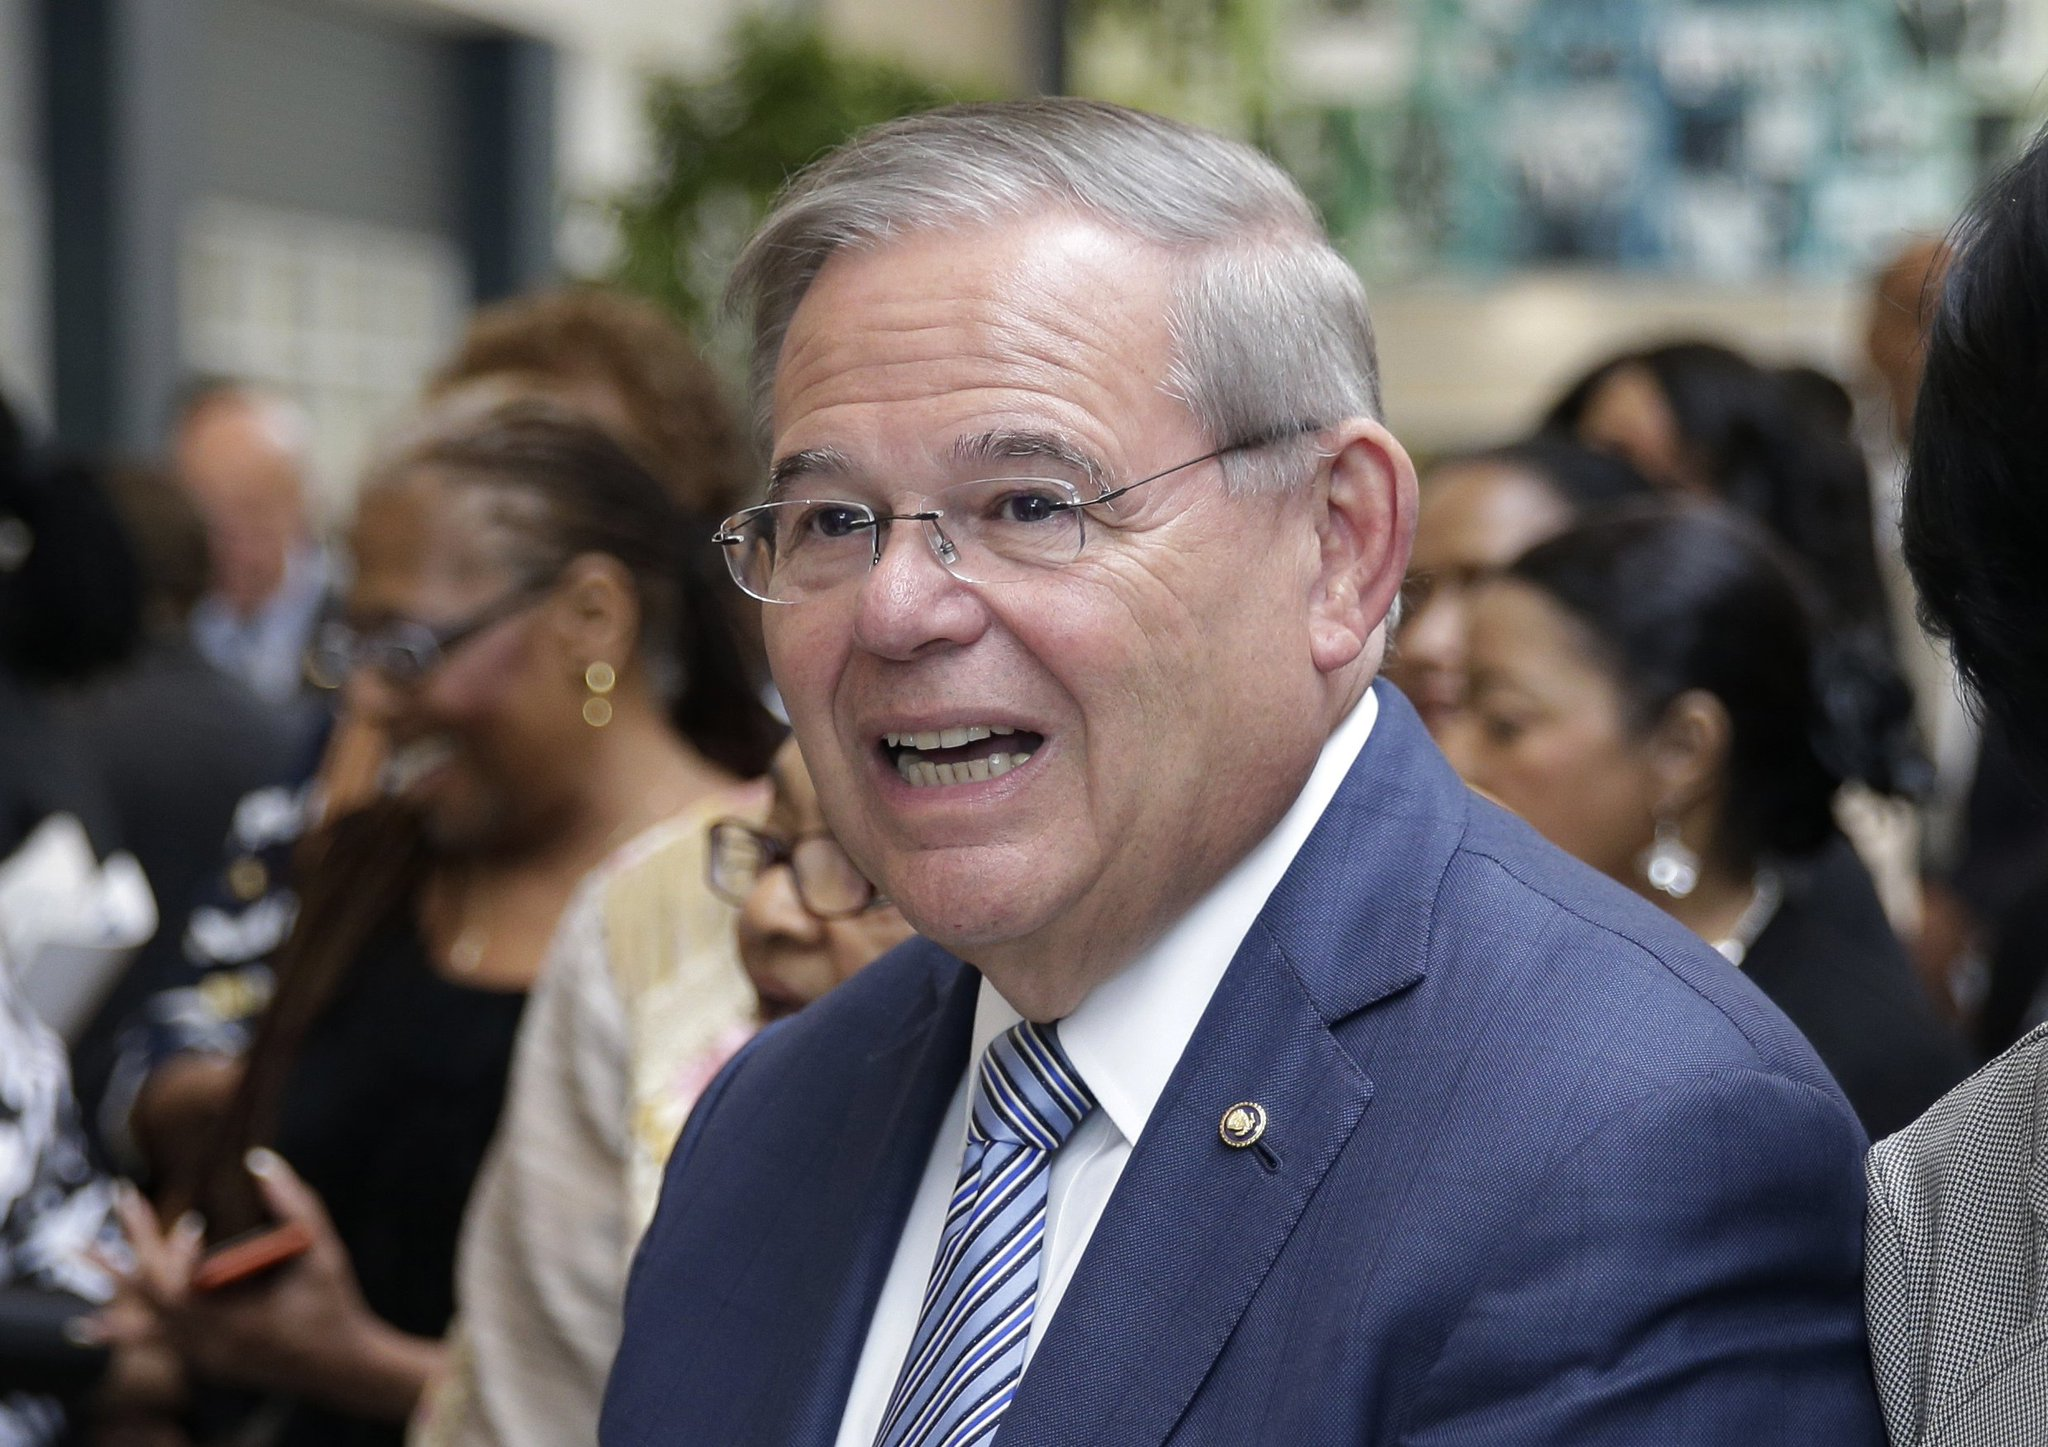 Incumbent Sen. Bob Menendez has won his party's primary in New Jersey.   Live results page: https://t.co/bpNVDOdatC https://t.co/OQDFgbl8Ao